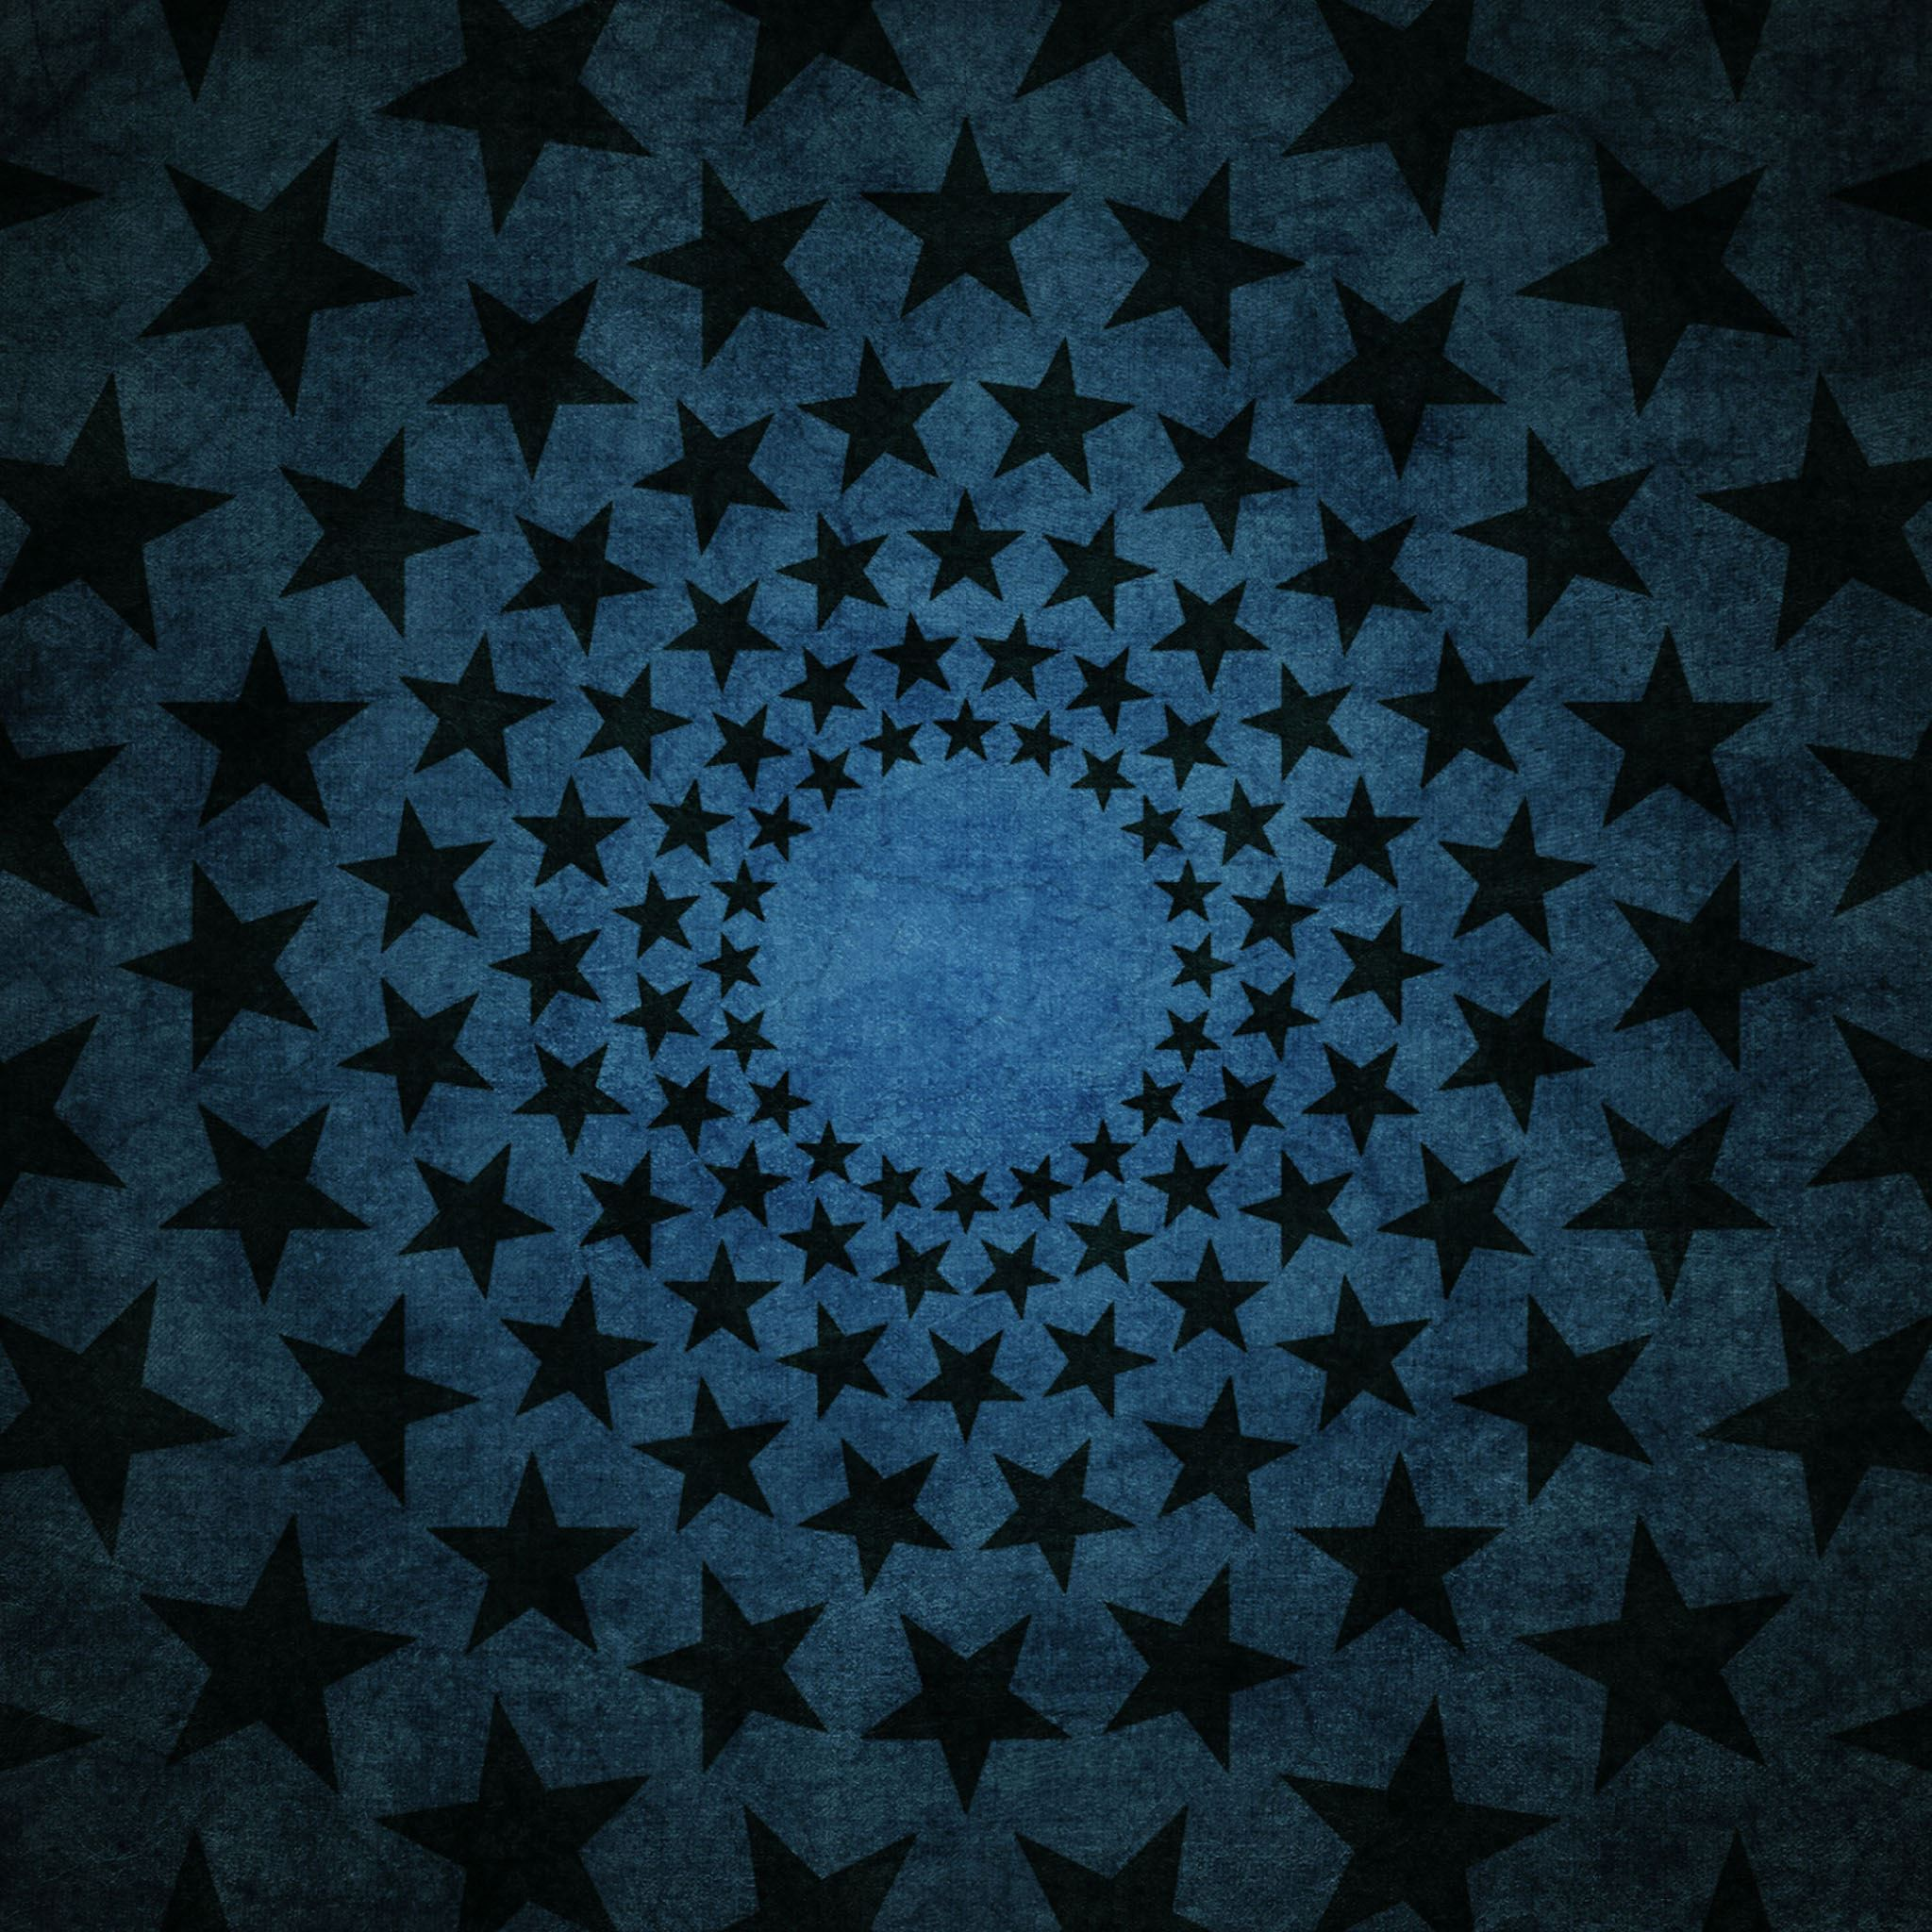 Round Star Pattern Art iPad Air wallpaper